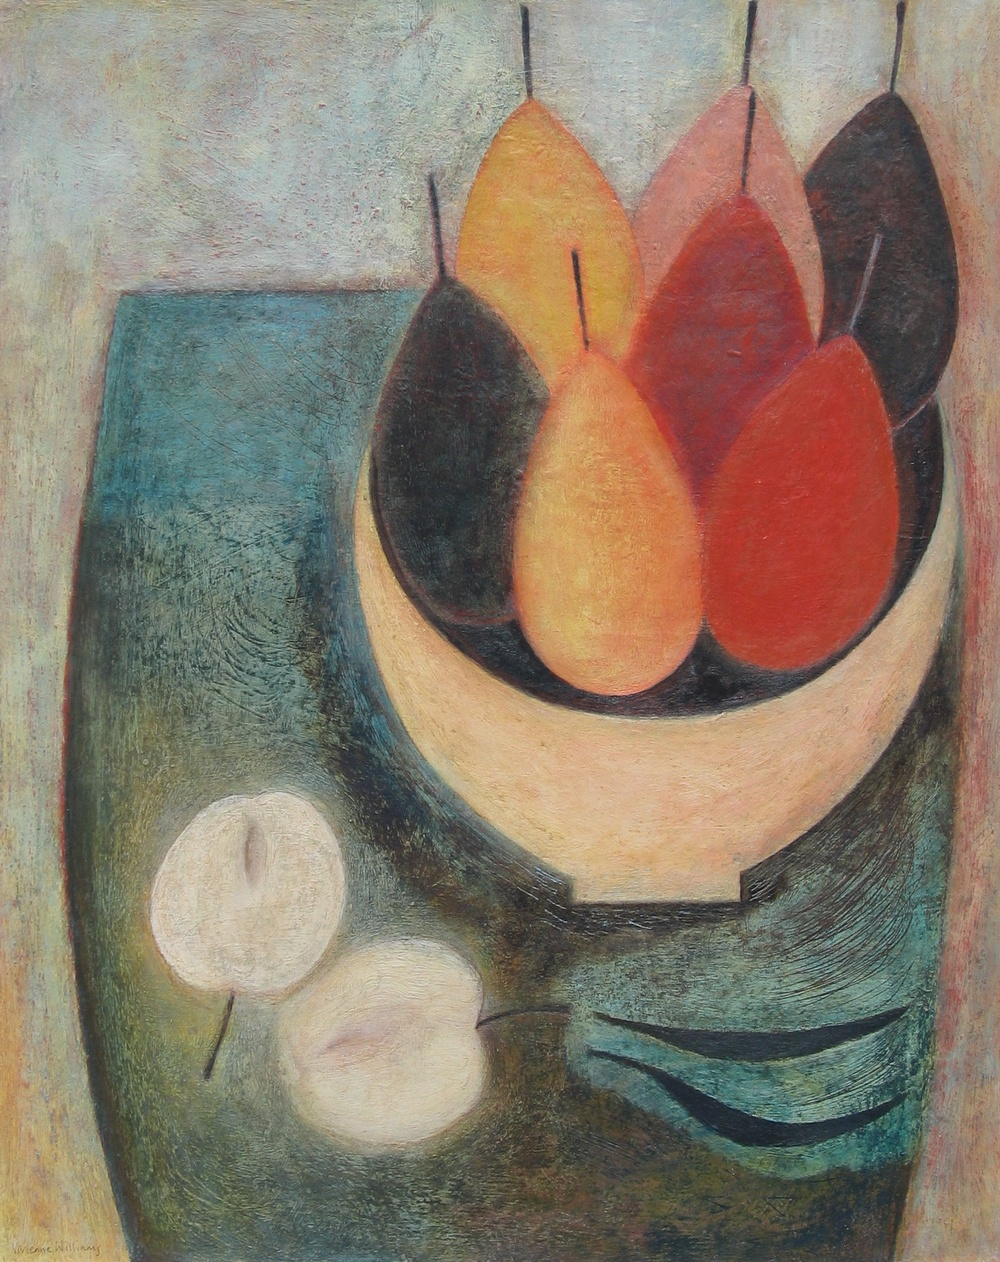 Seven Pears, Apple and Beans, 51cm x 41cm, 2014